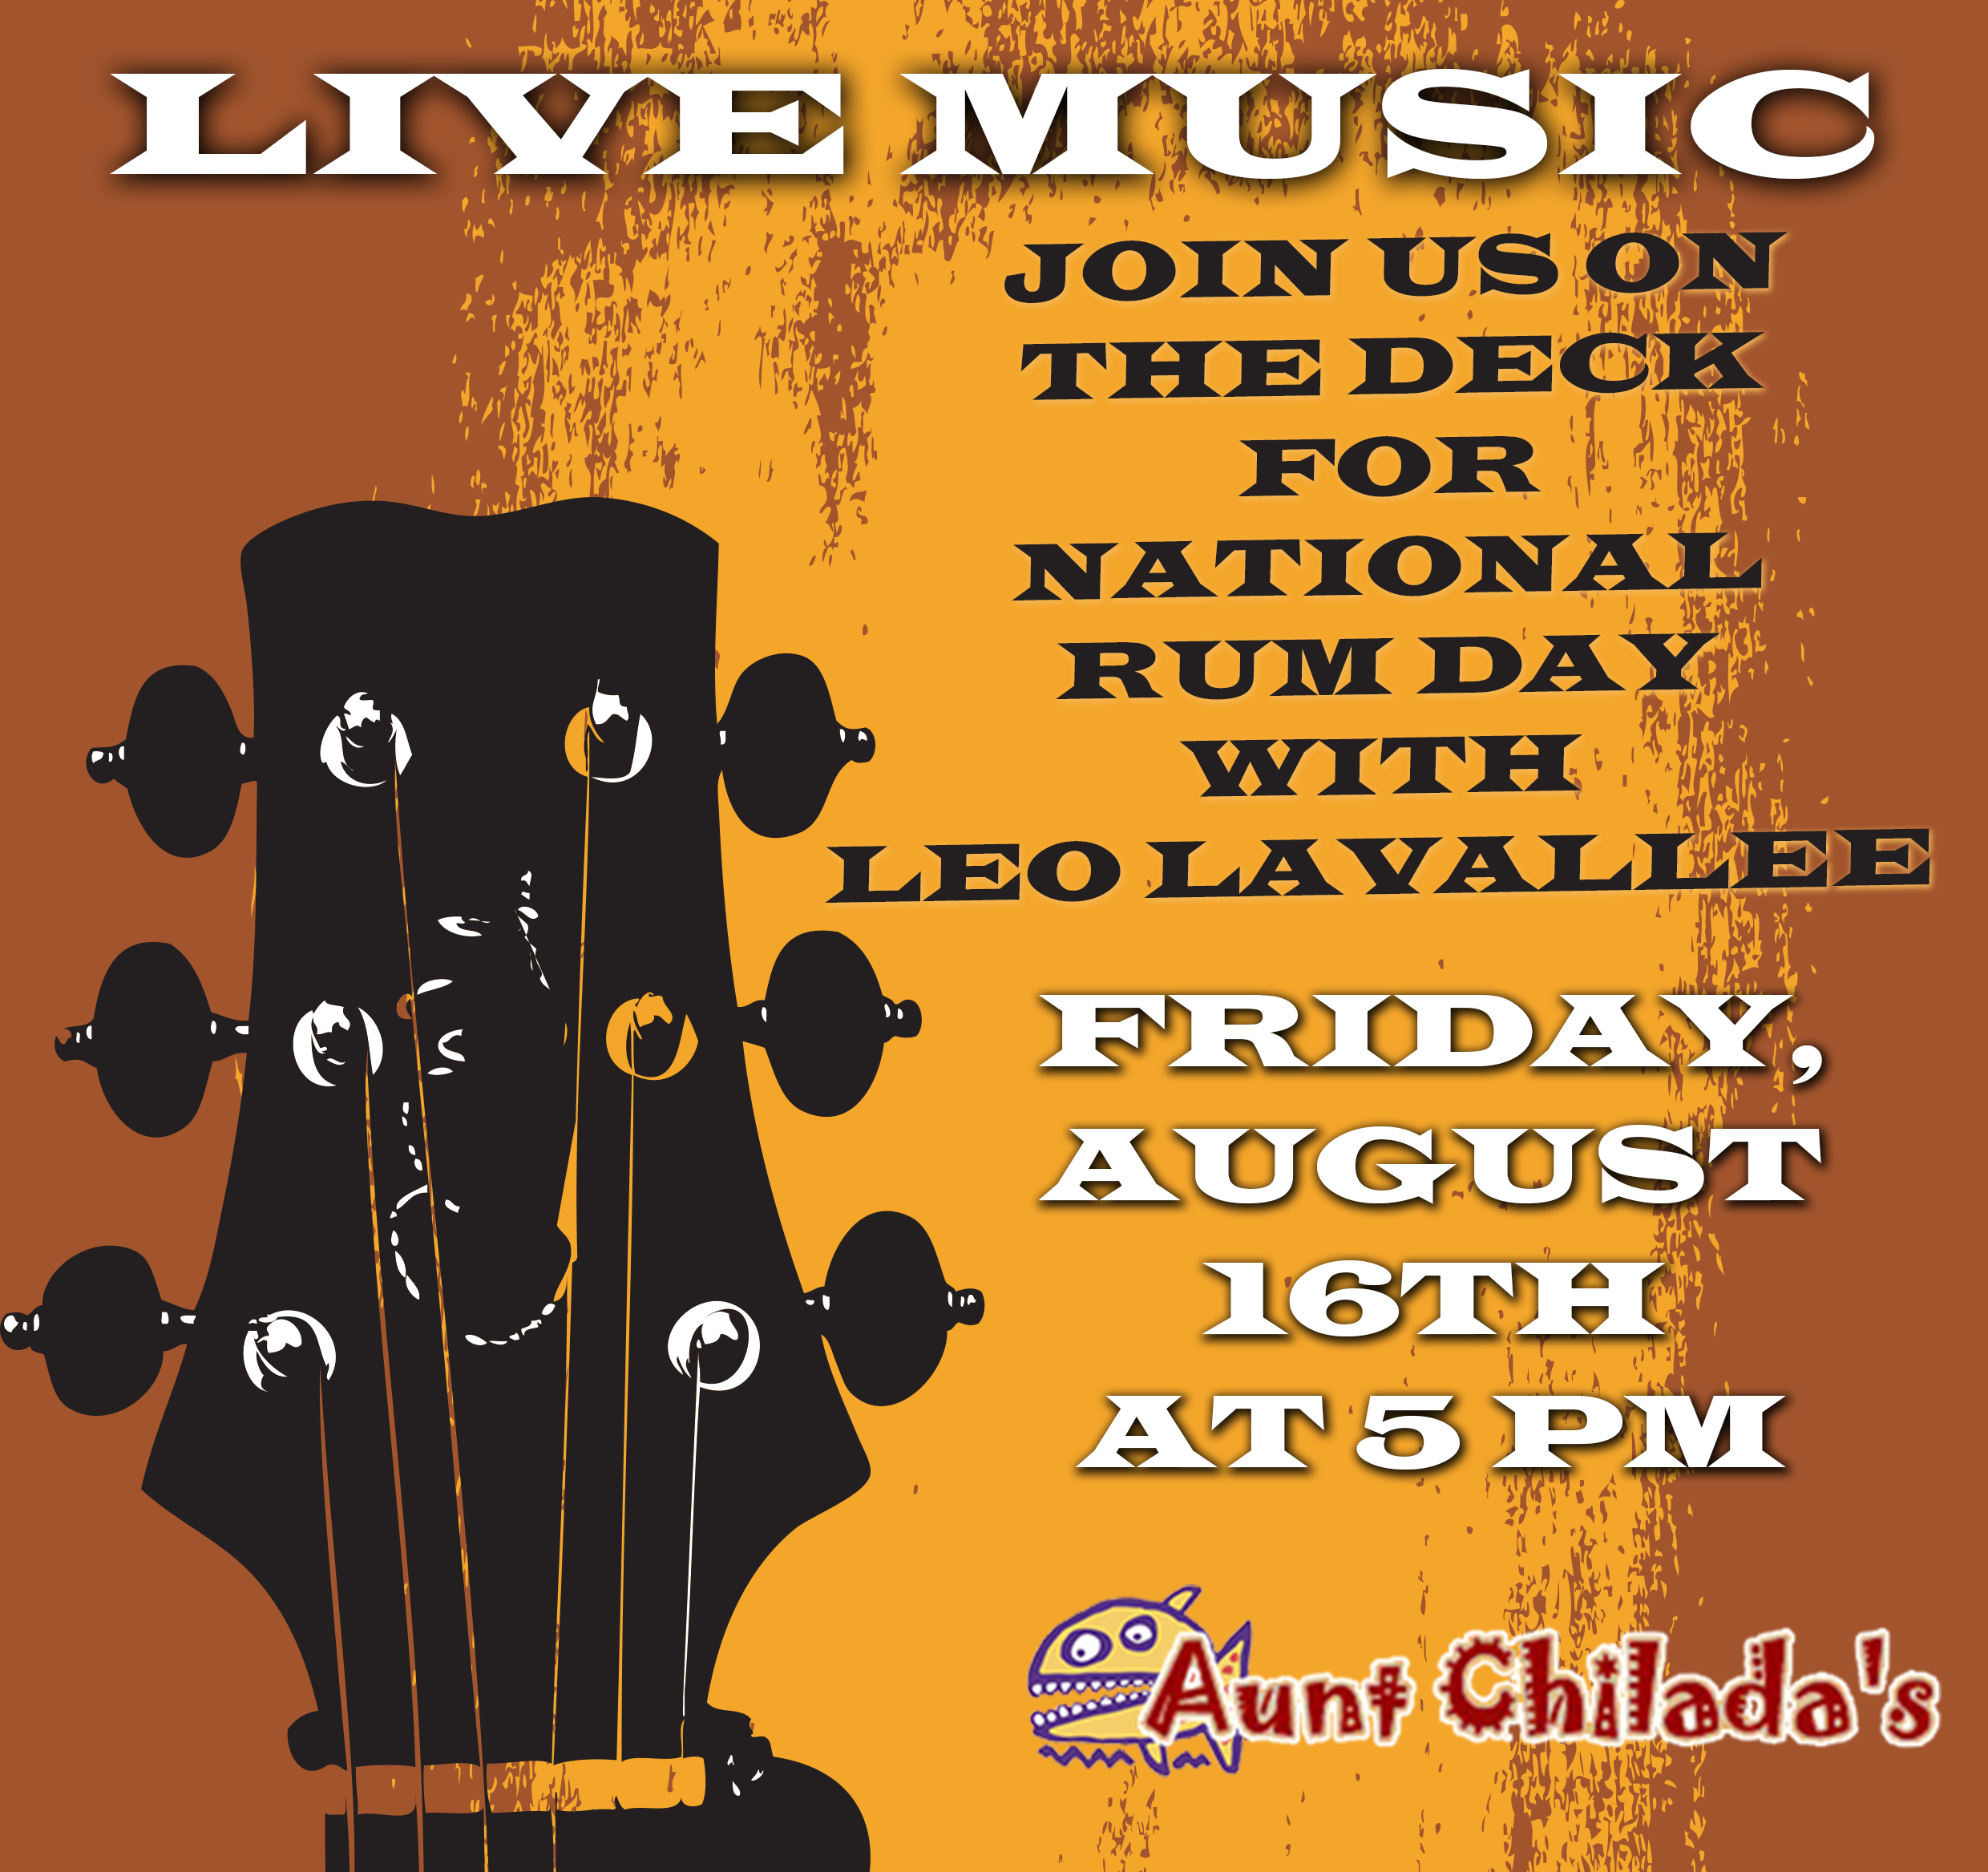 Live Music On the deck for national rum day with Leo Lavallee. Friday, August 16th at 5 pm